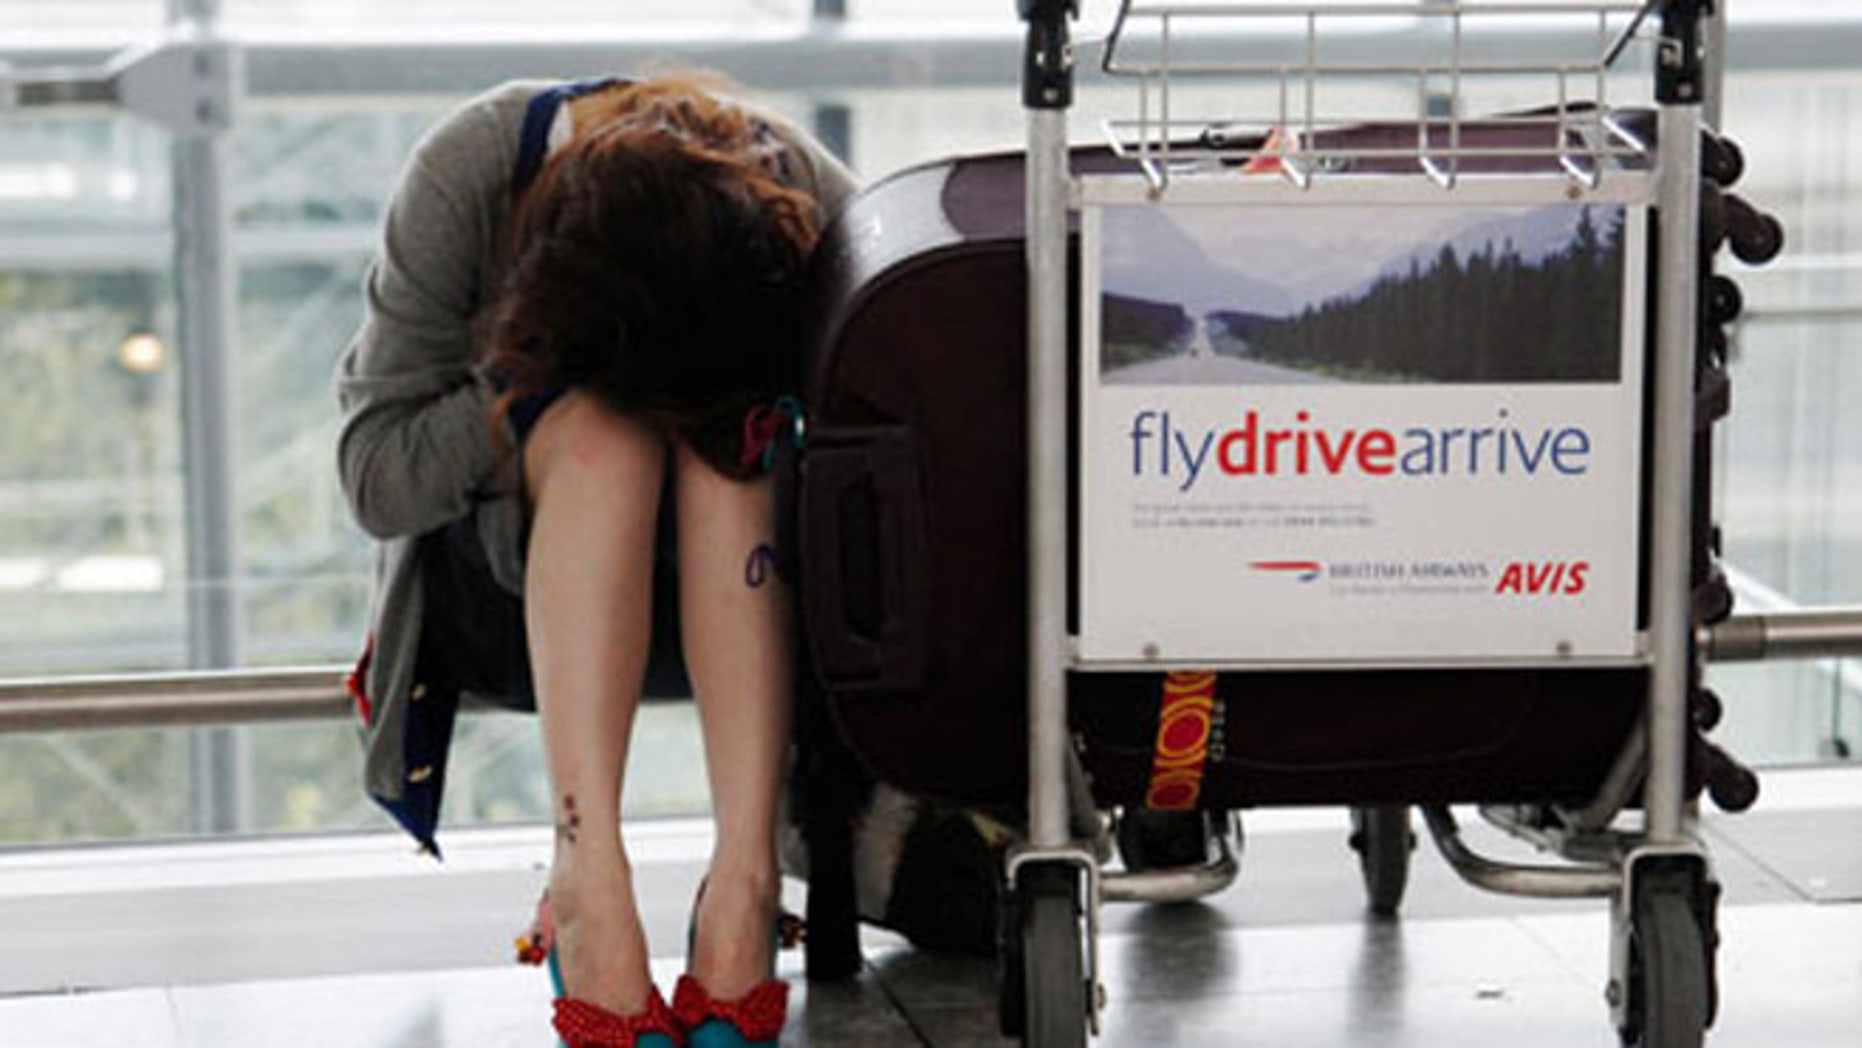 Passengers aren't yet fed up with shrinking seats and high fares, but it could be soon.